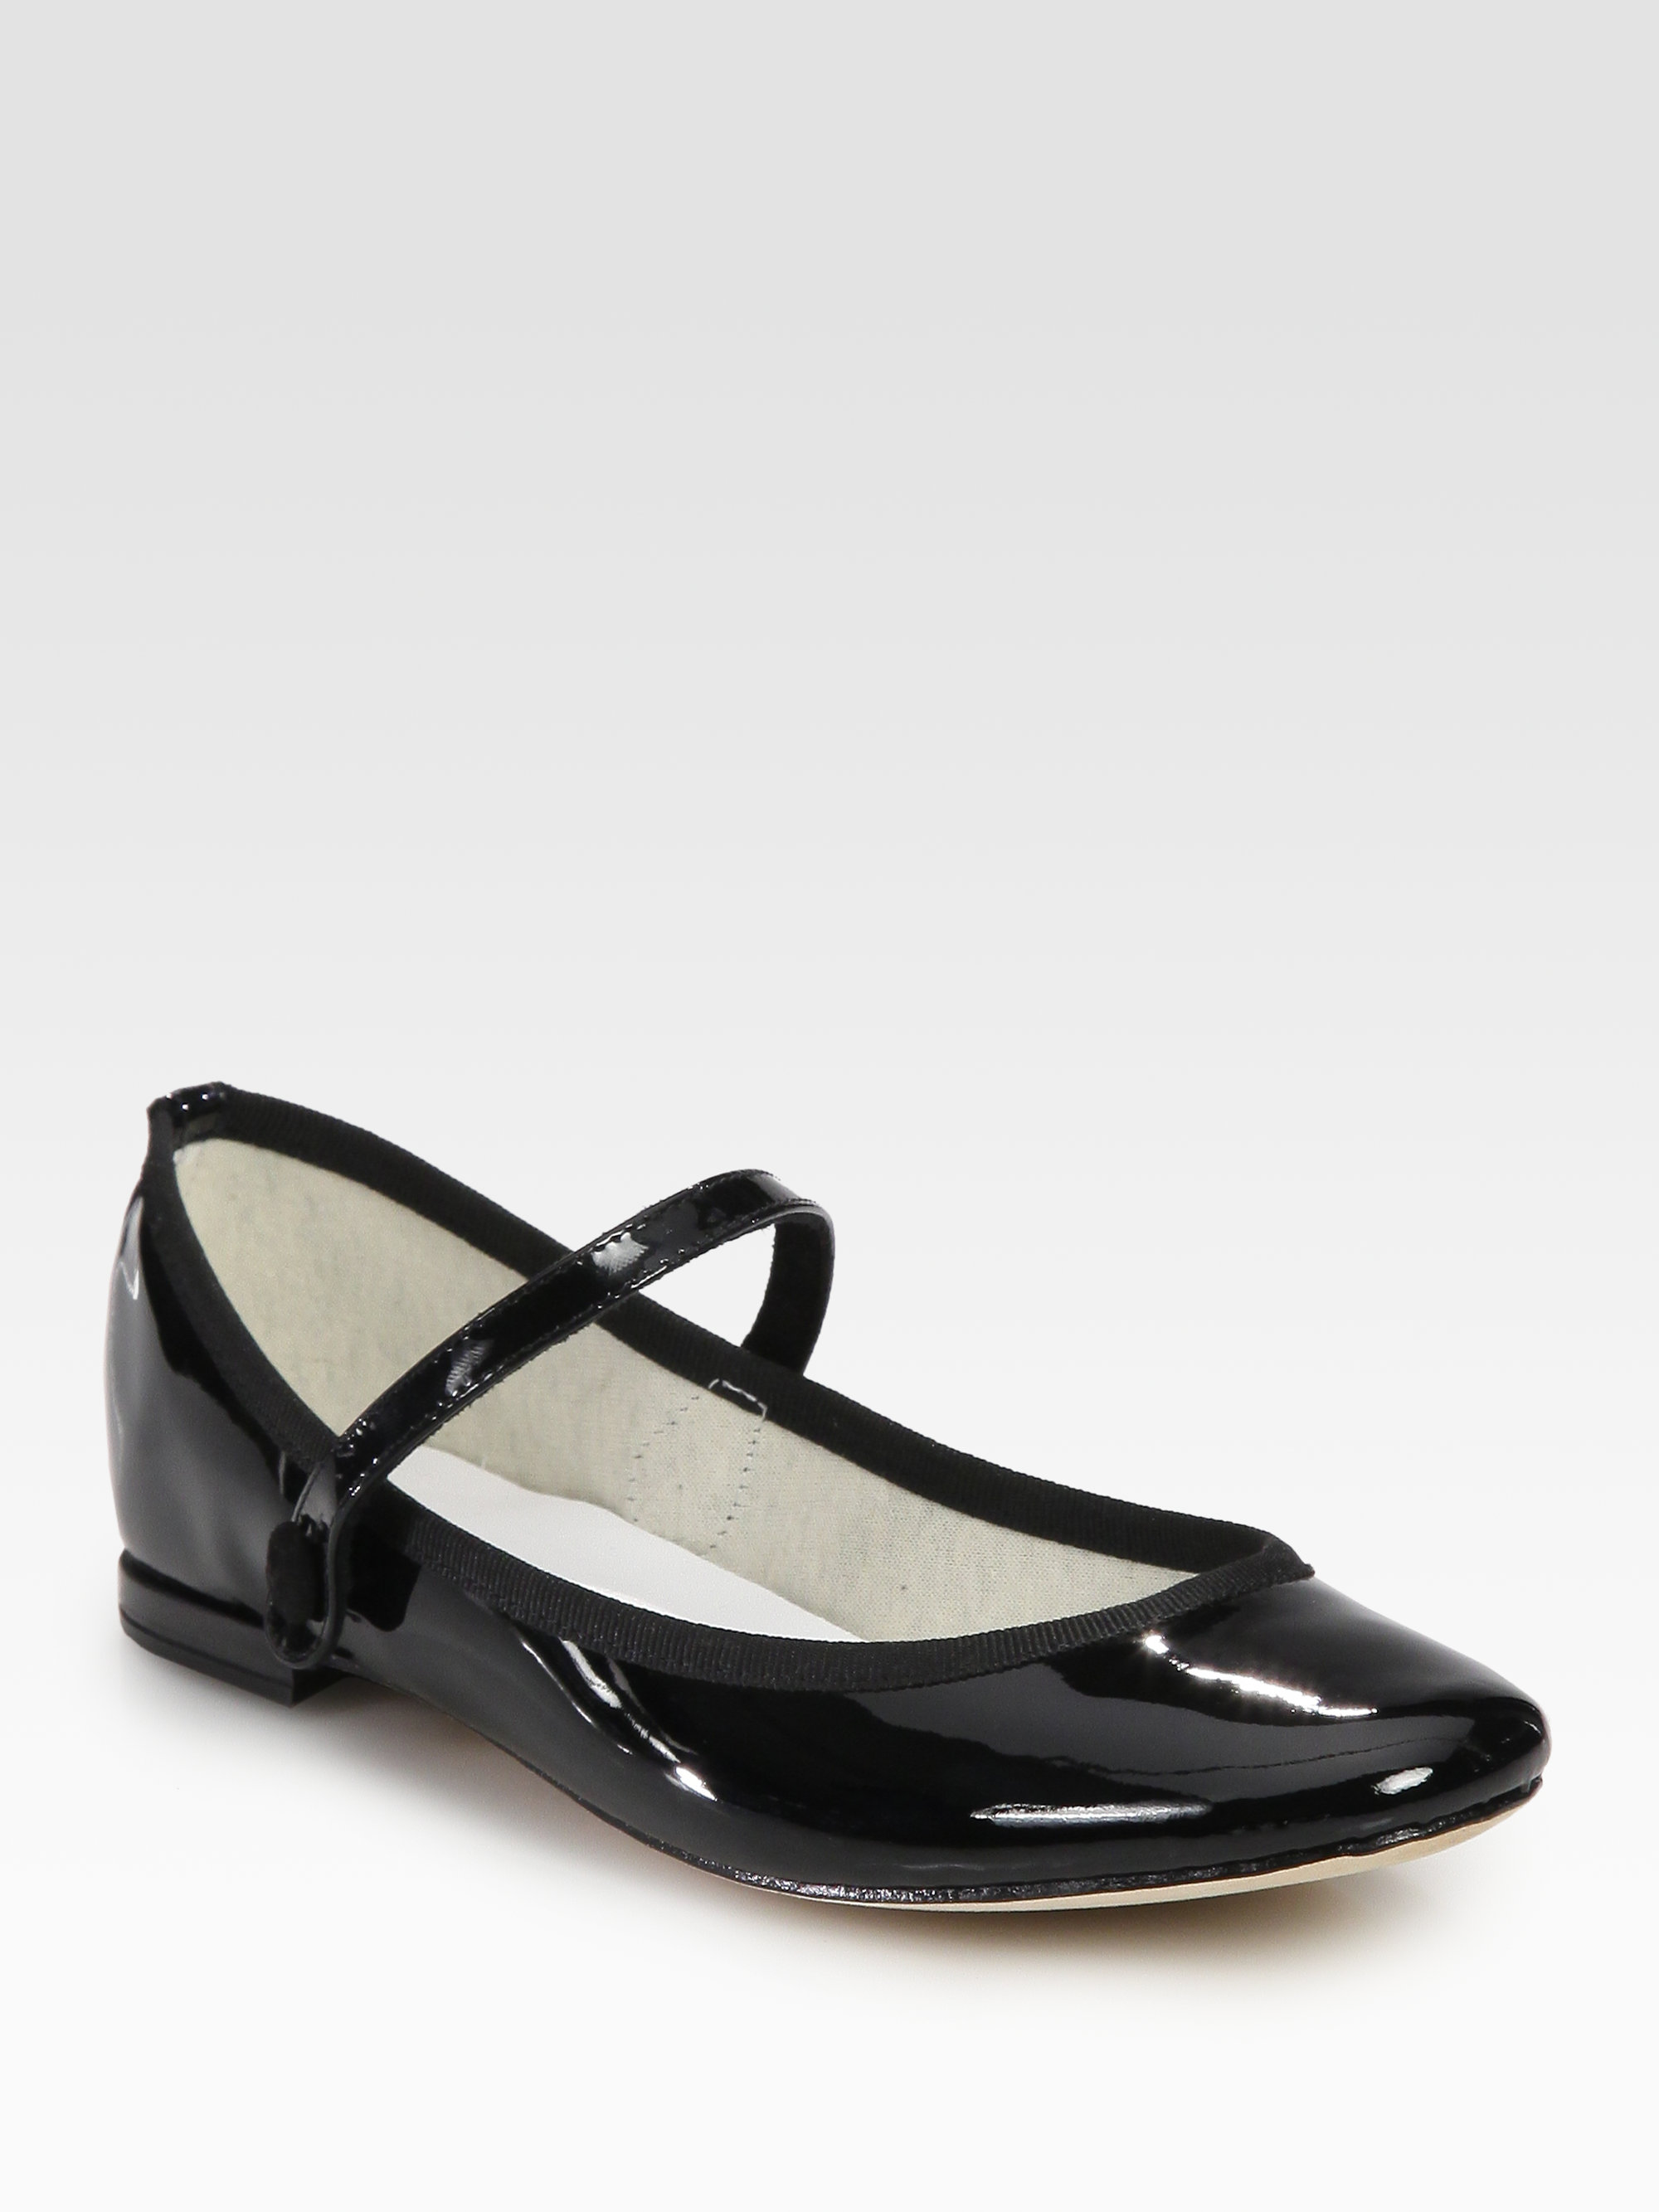 Black Patent School Shoes Pumps